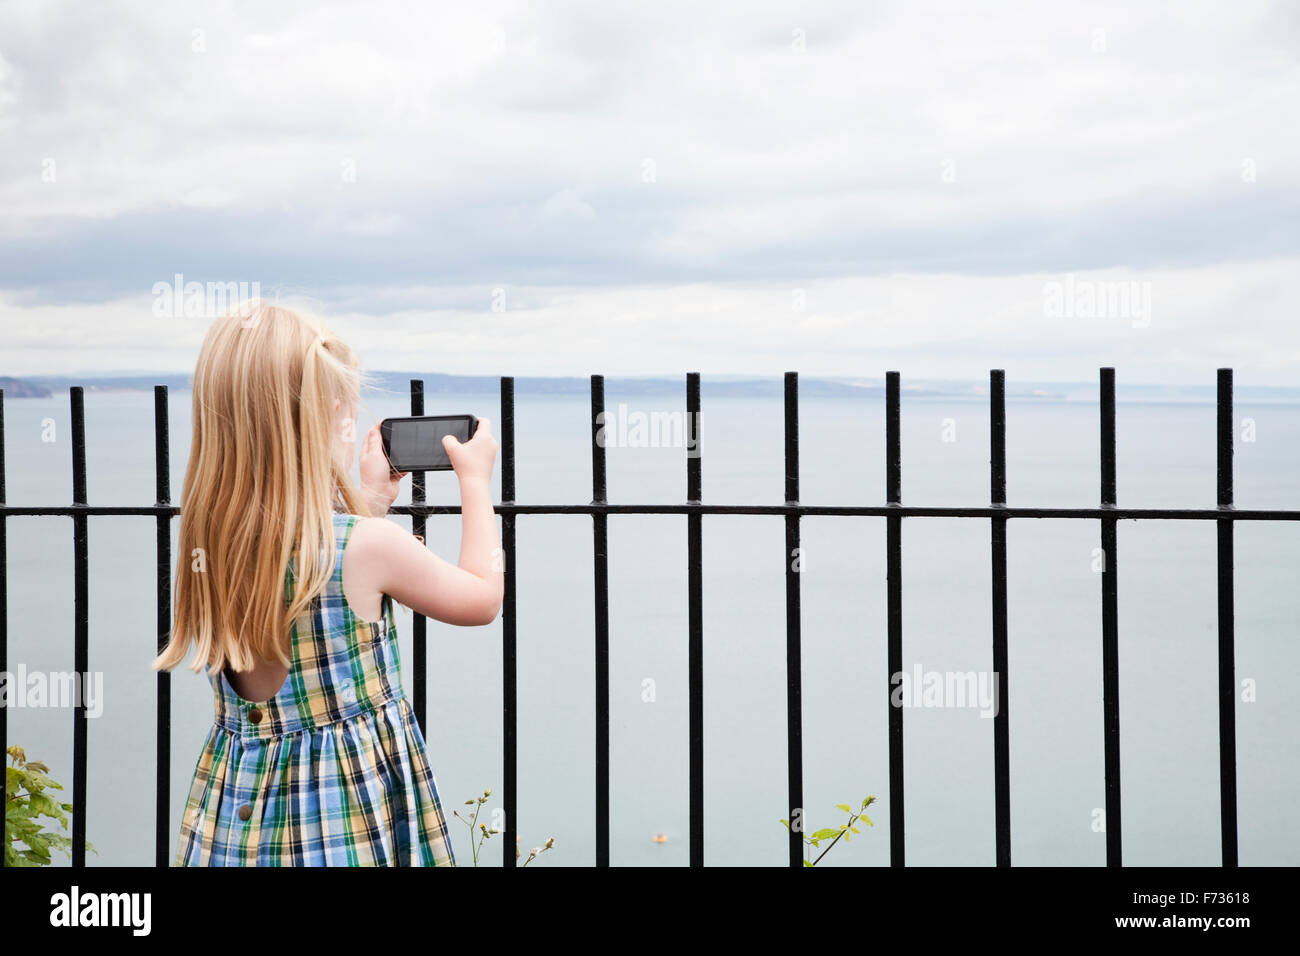 A girl in a checked sundress taking a photograph with a smart phone. - Stock Image